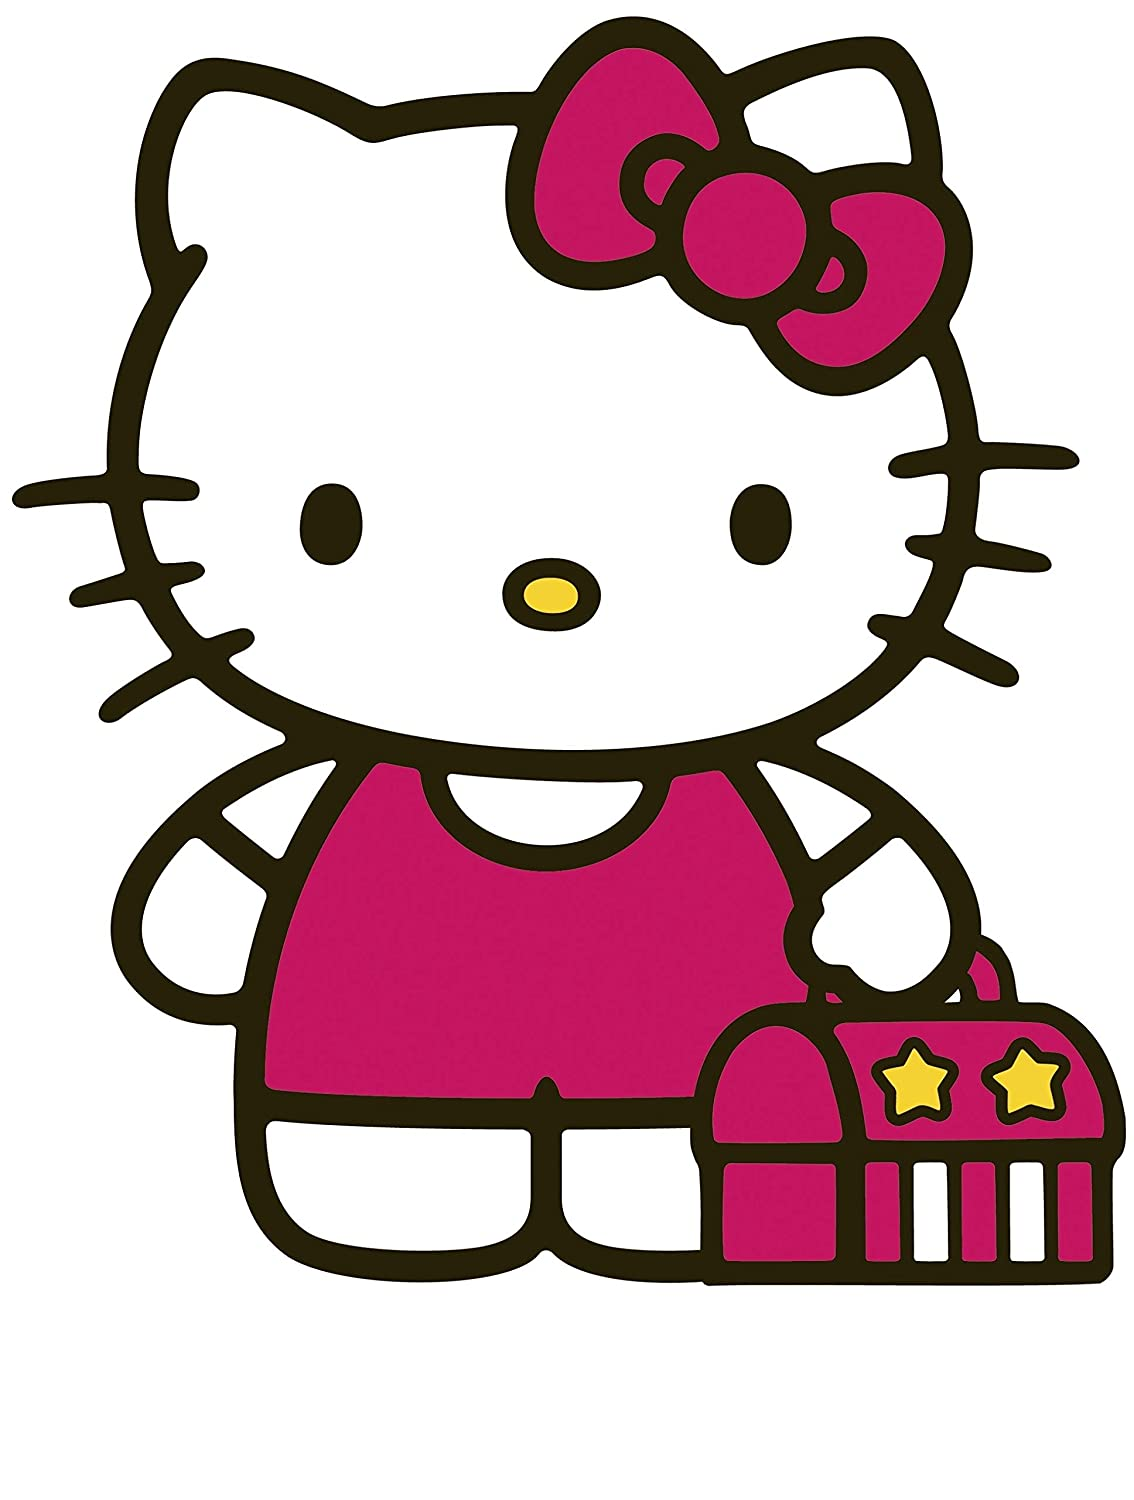 """8"""" Tricycle Hello Kitty Sanrio Removable Peel Self Stick Adhesive Vinyl Decorative Wall Decal Sticker Art Kids Room Home Decor Girls Children Nursery Baby 6x8 Inch Tall"""